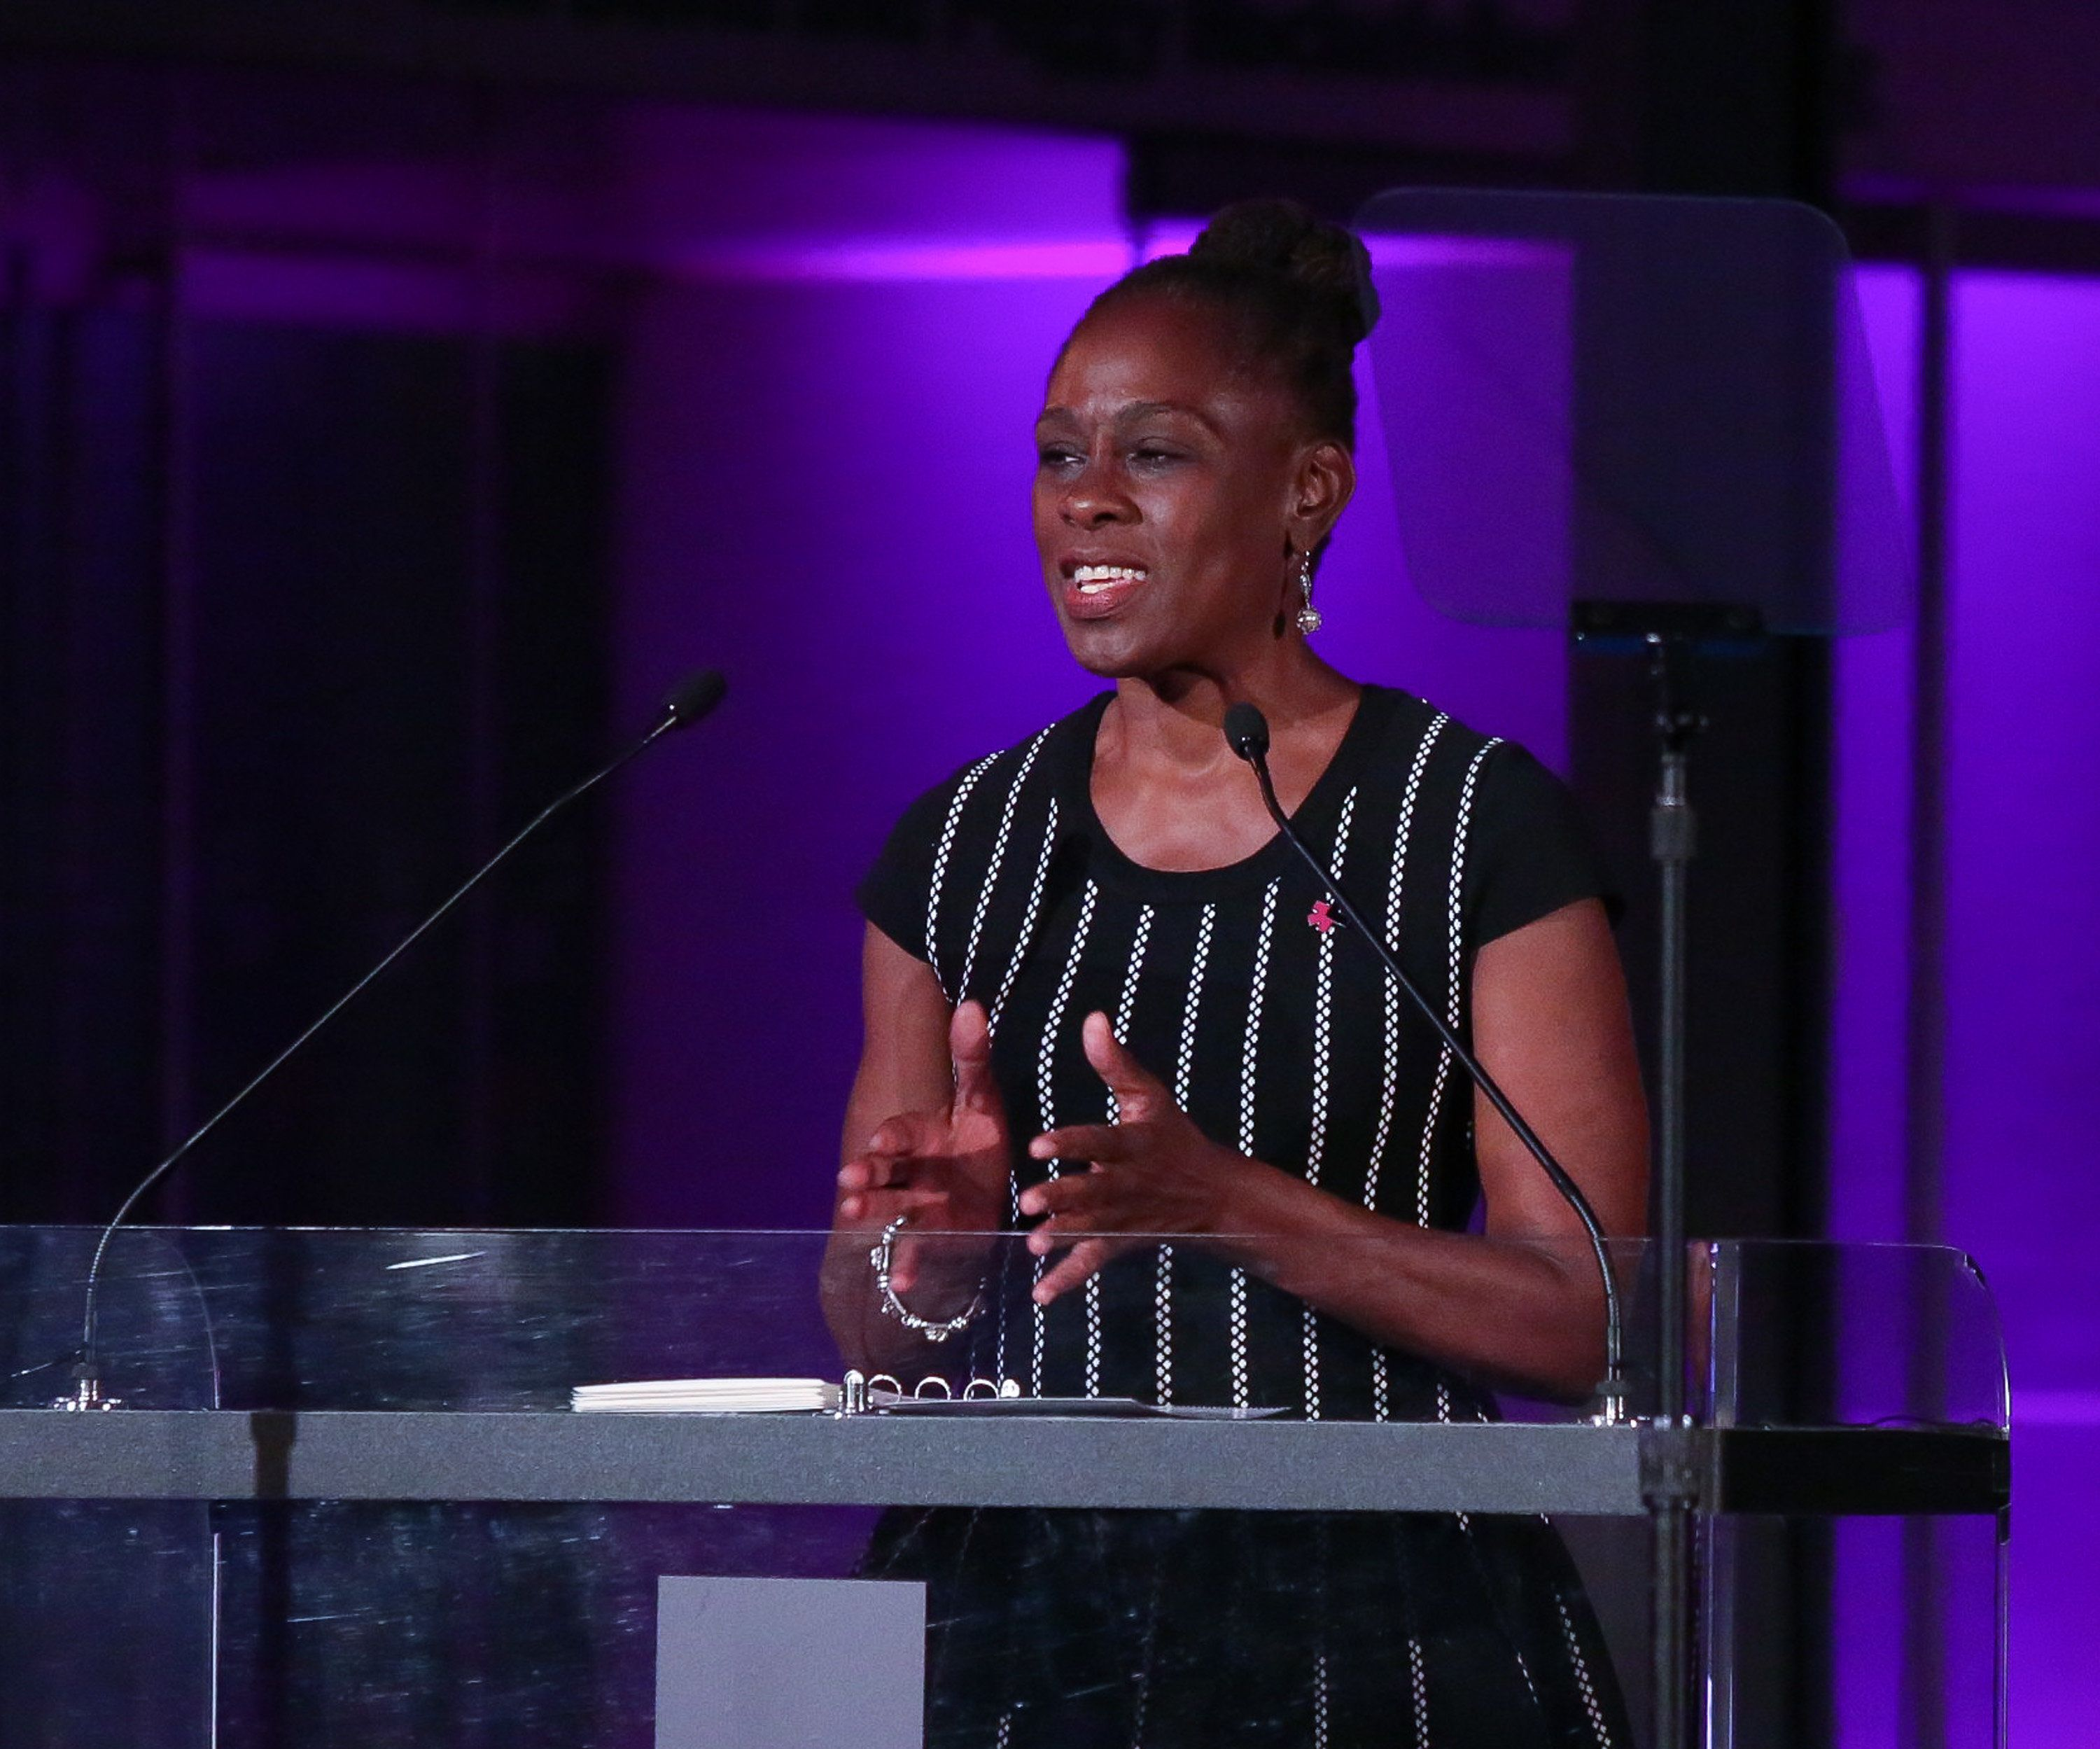 NEW YORK, NY - SEPTEMBER 20:  Chirlane McCray, First Lady of New York City speaks at HeForShe 2nd Anniversary Reception at Museum of Modern Art on September 20, 2016 in New York City.  (Photo by Rob Kim/Getty Images)